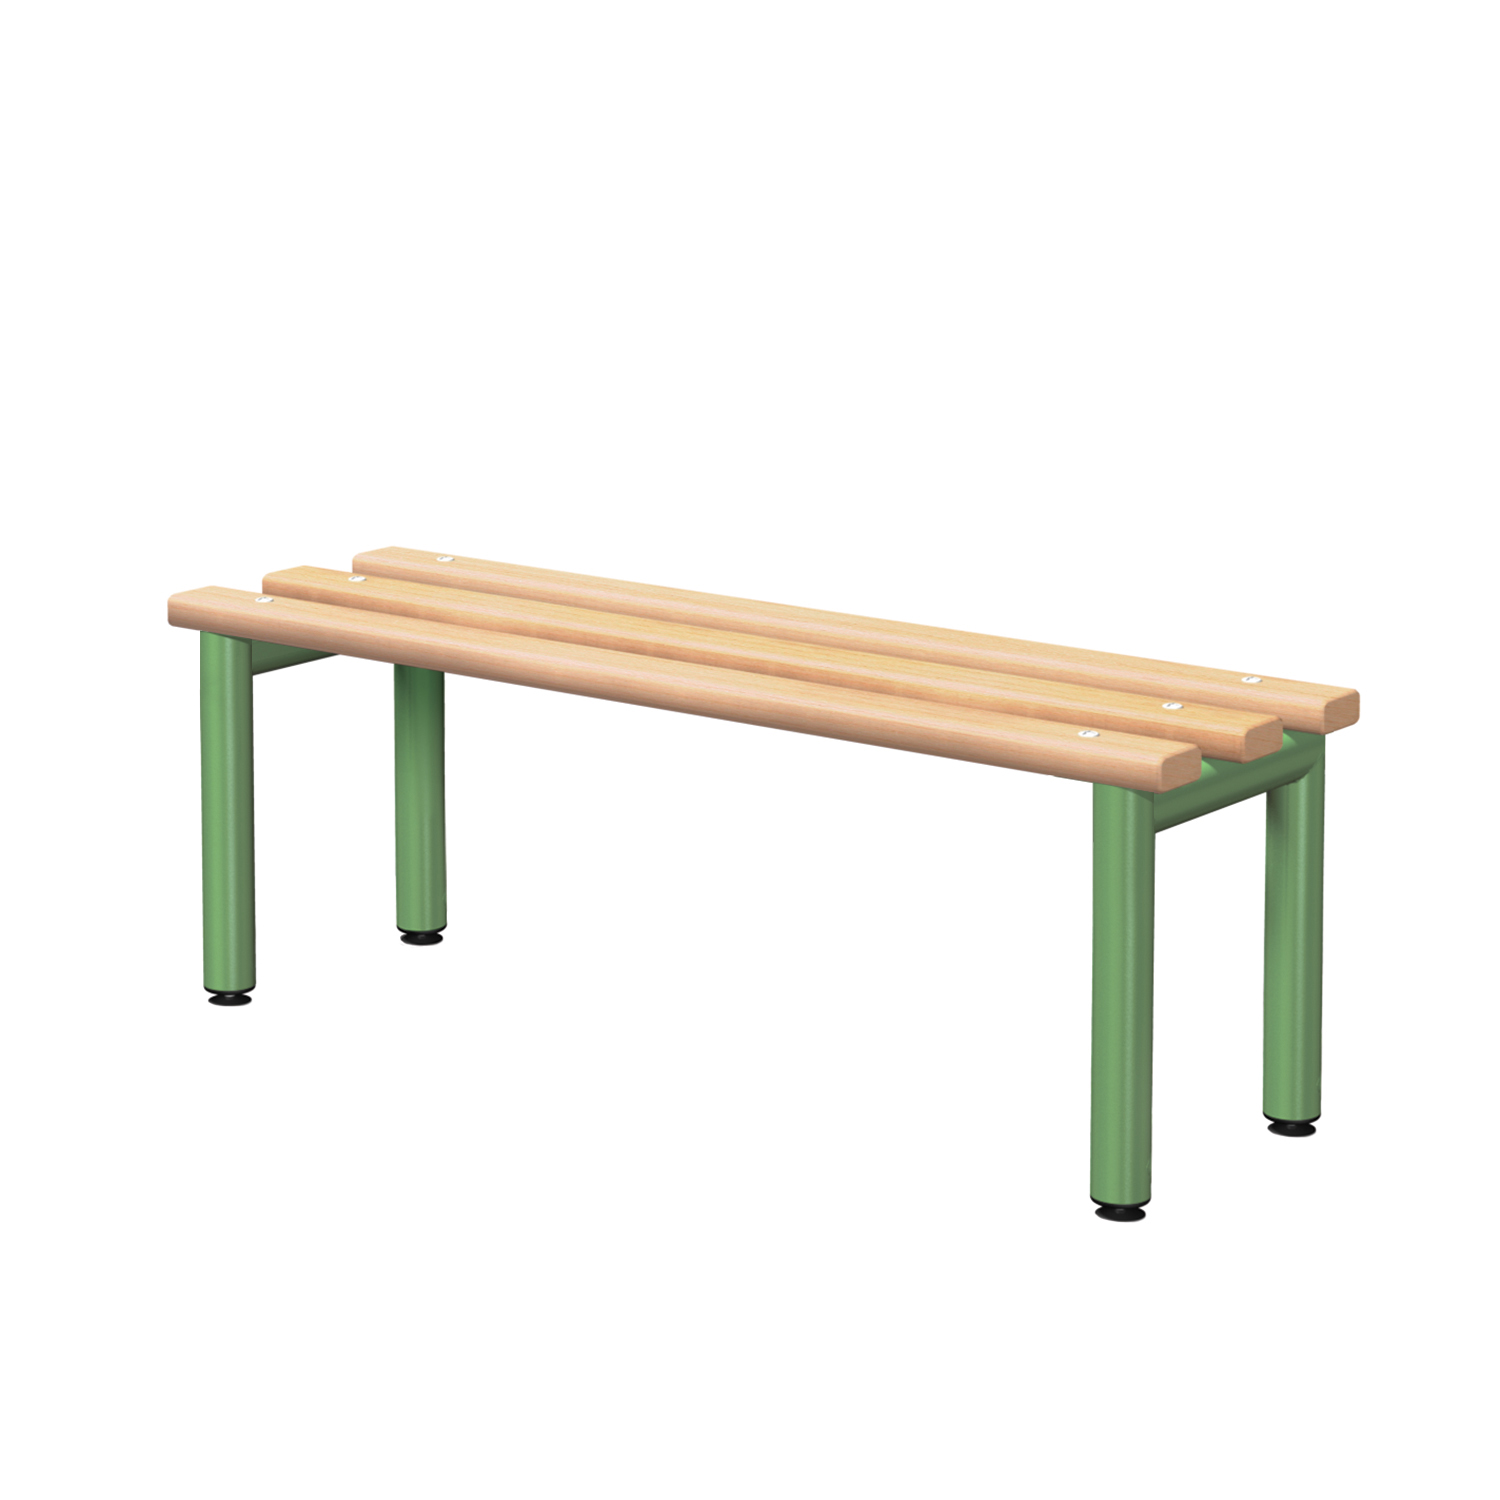 Probe cloakroom wood bench